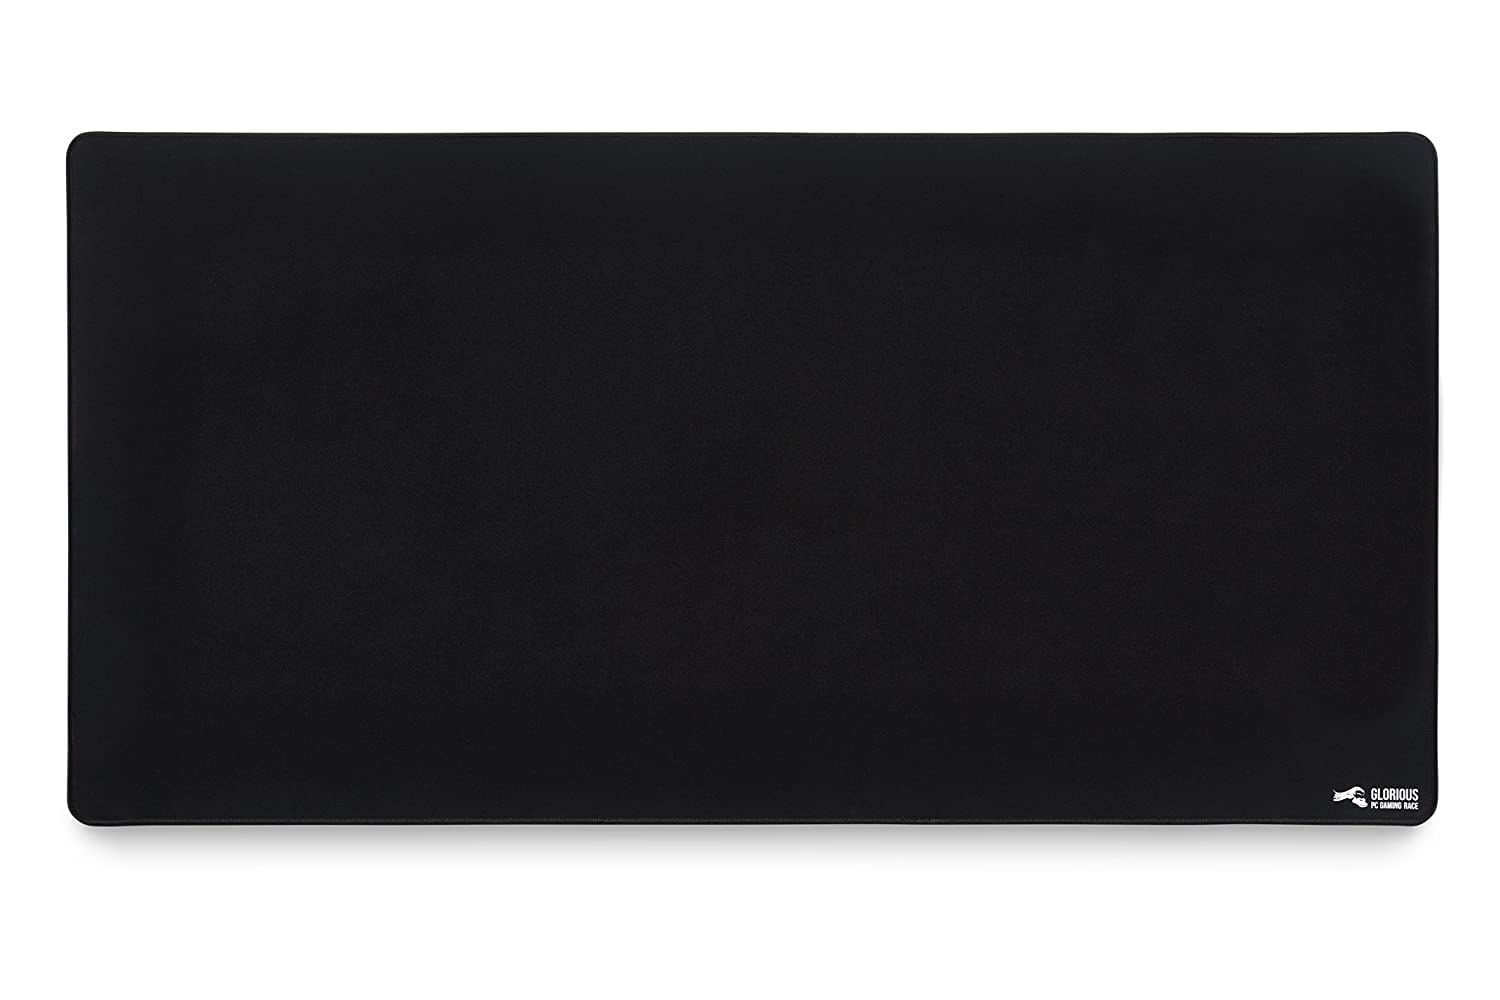 419d22d2b94 Amazon.com : Glorious XXL Extended Gaming Mouse Mat/Pad - Large, Wide  (XLarge) Black Cloth Mousepad, Stitched Edges | 36x18